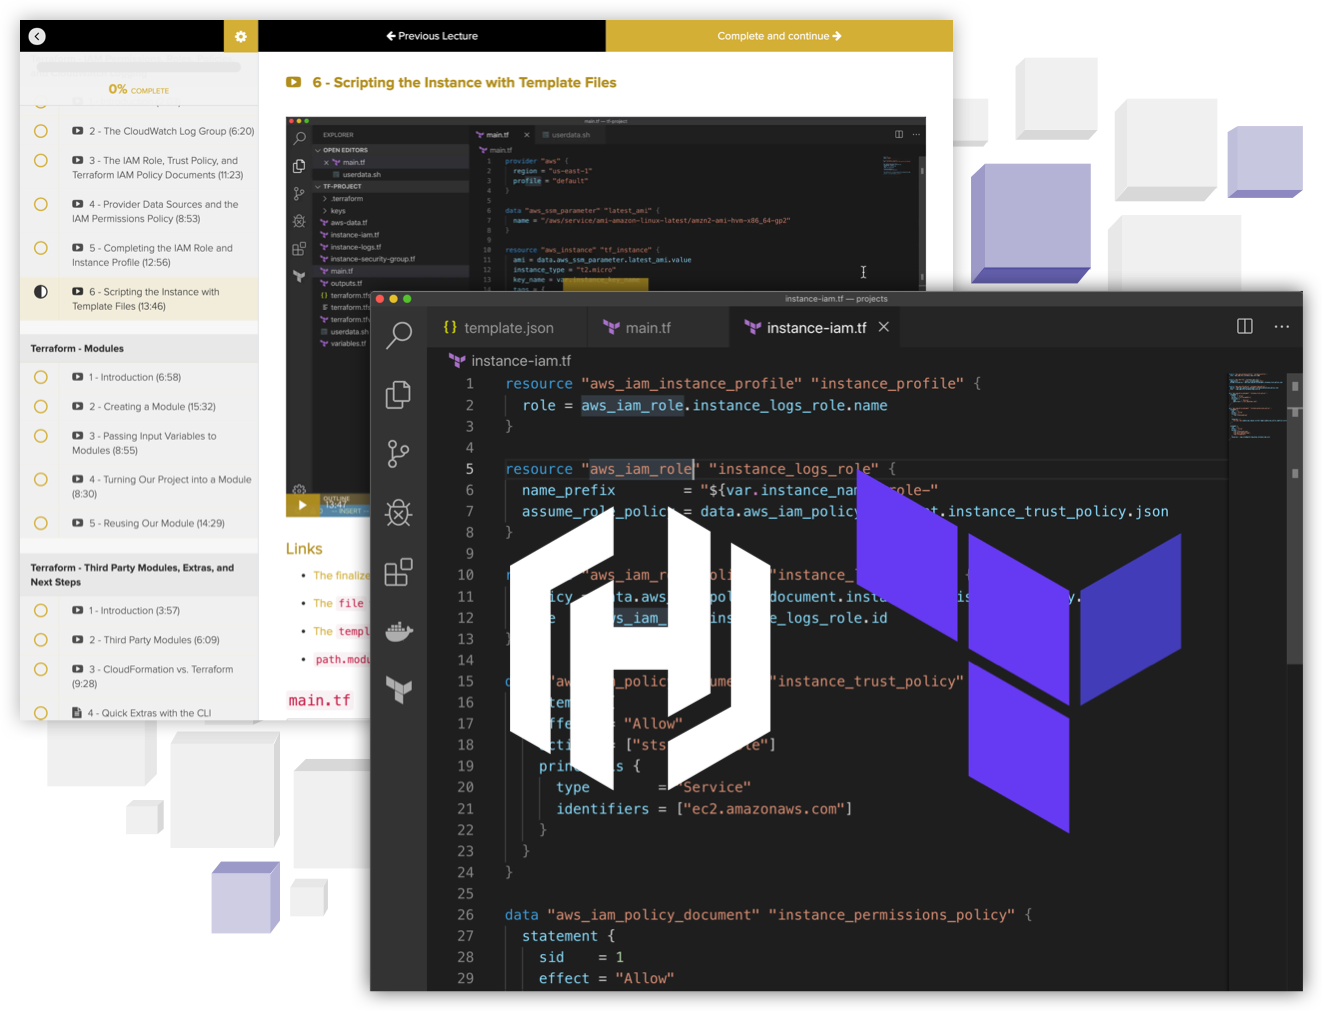 learn HashiCorp's DevOps darling Terraform